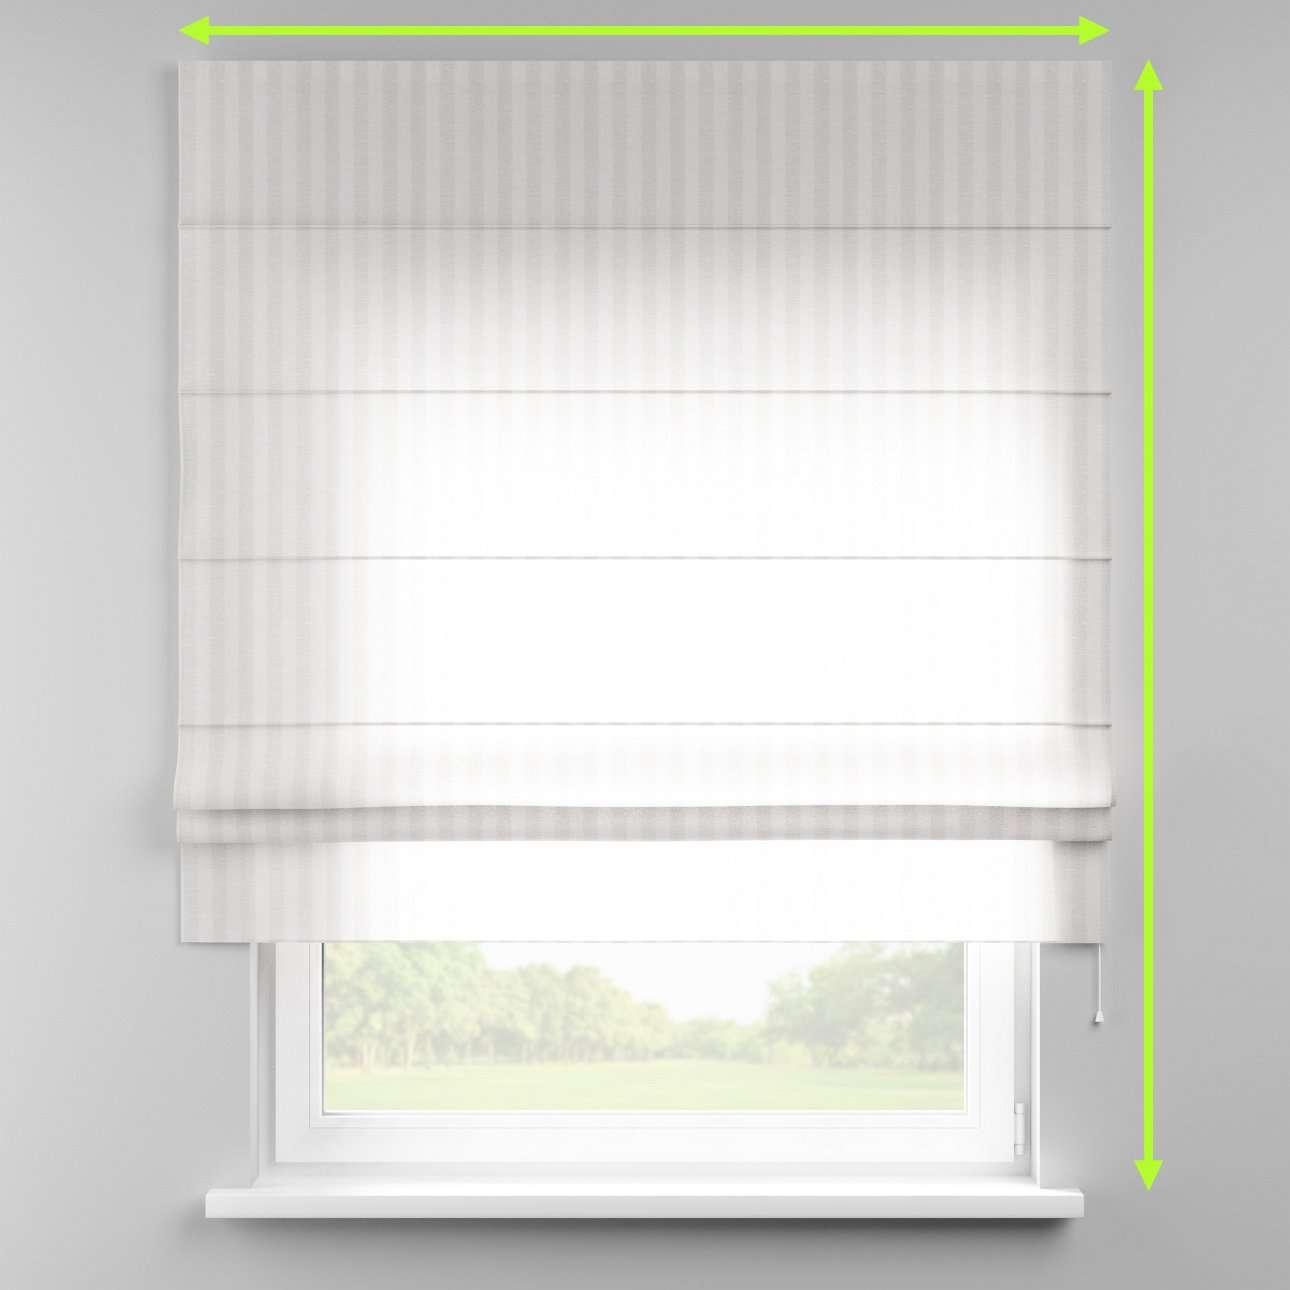 Padva roman blind  in collection Linen , fabric: 392-03